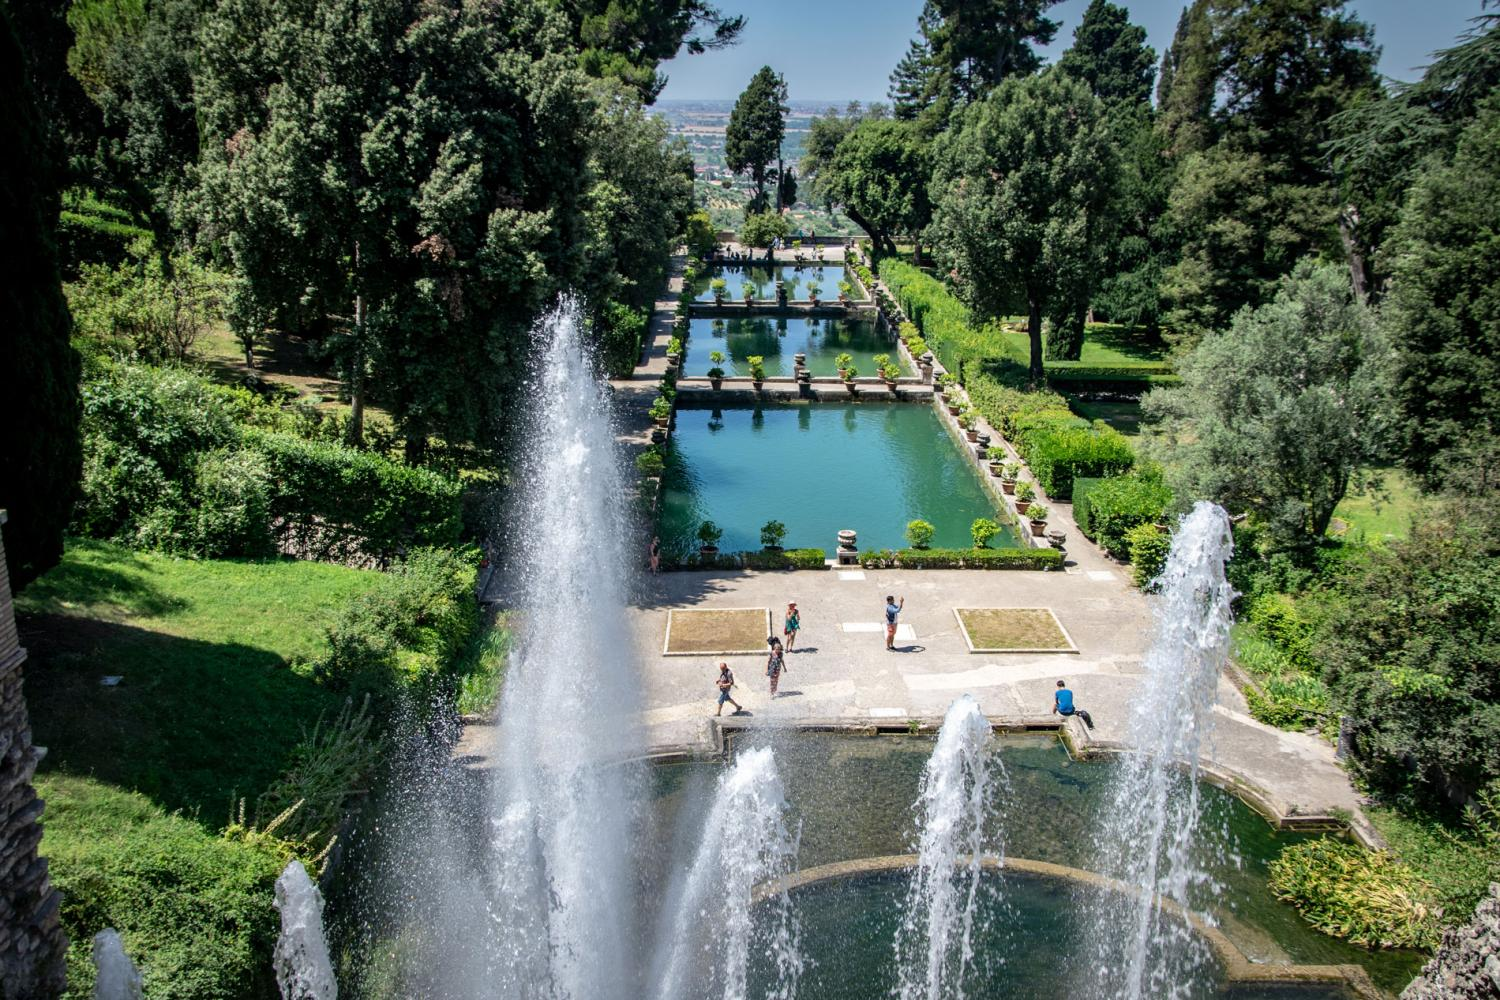 UNESCO Sites: Tivoli - Villa d'Este & Hadrian's Villa Day Trip From Rome